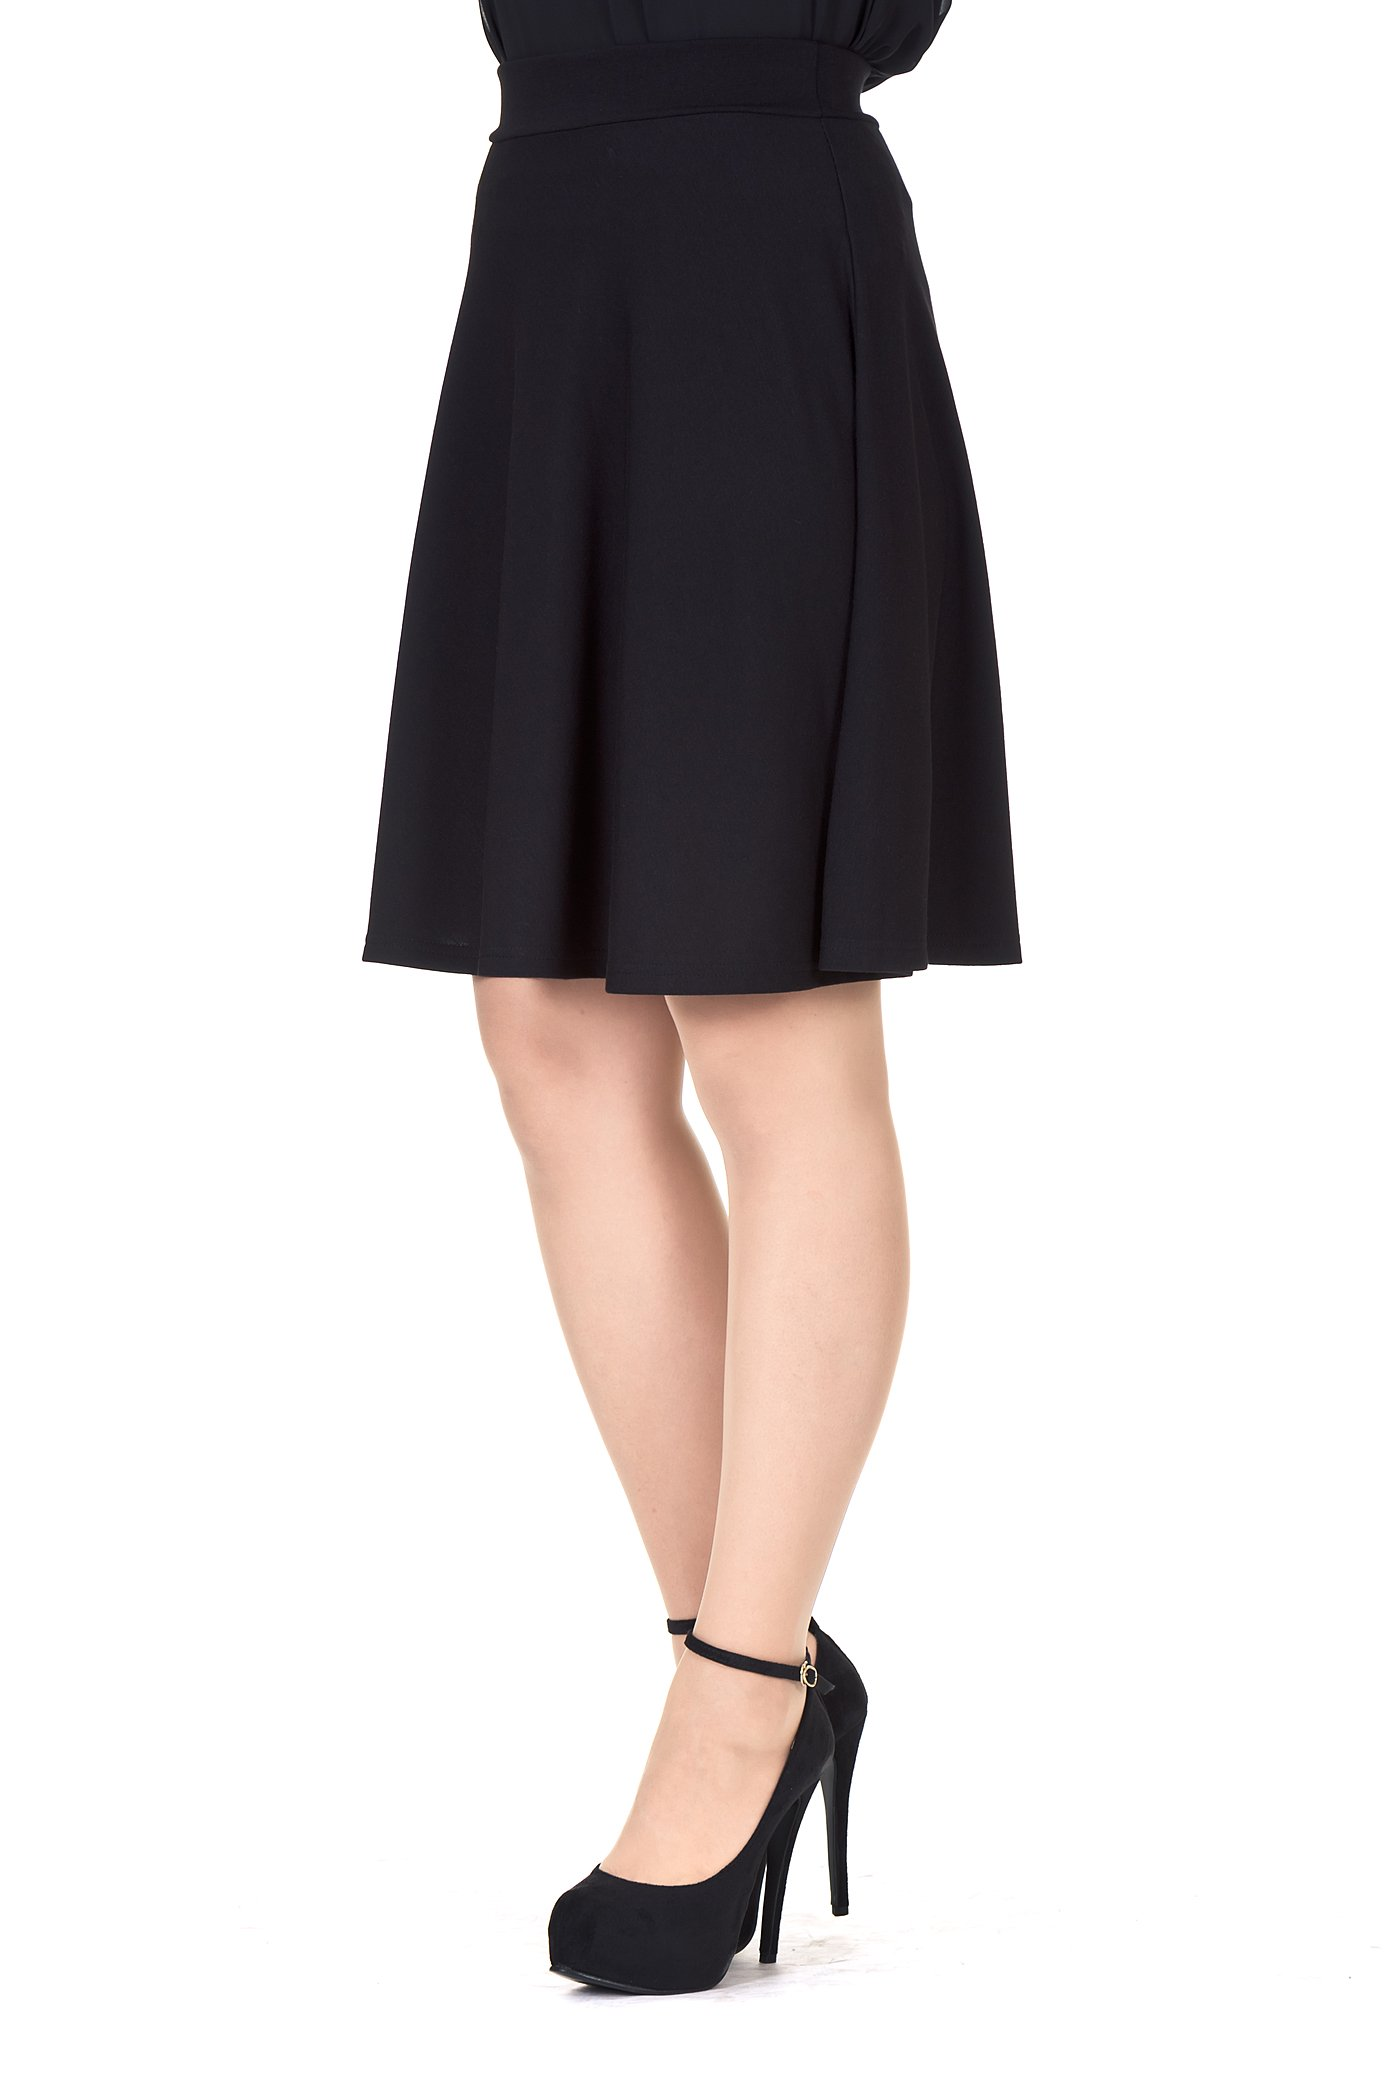 Simple Stretch A-line Flared Knee Length Skirt (XL, Knee Black) by Dani's Choice (Image #2)